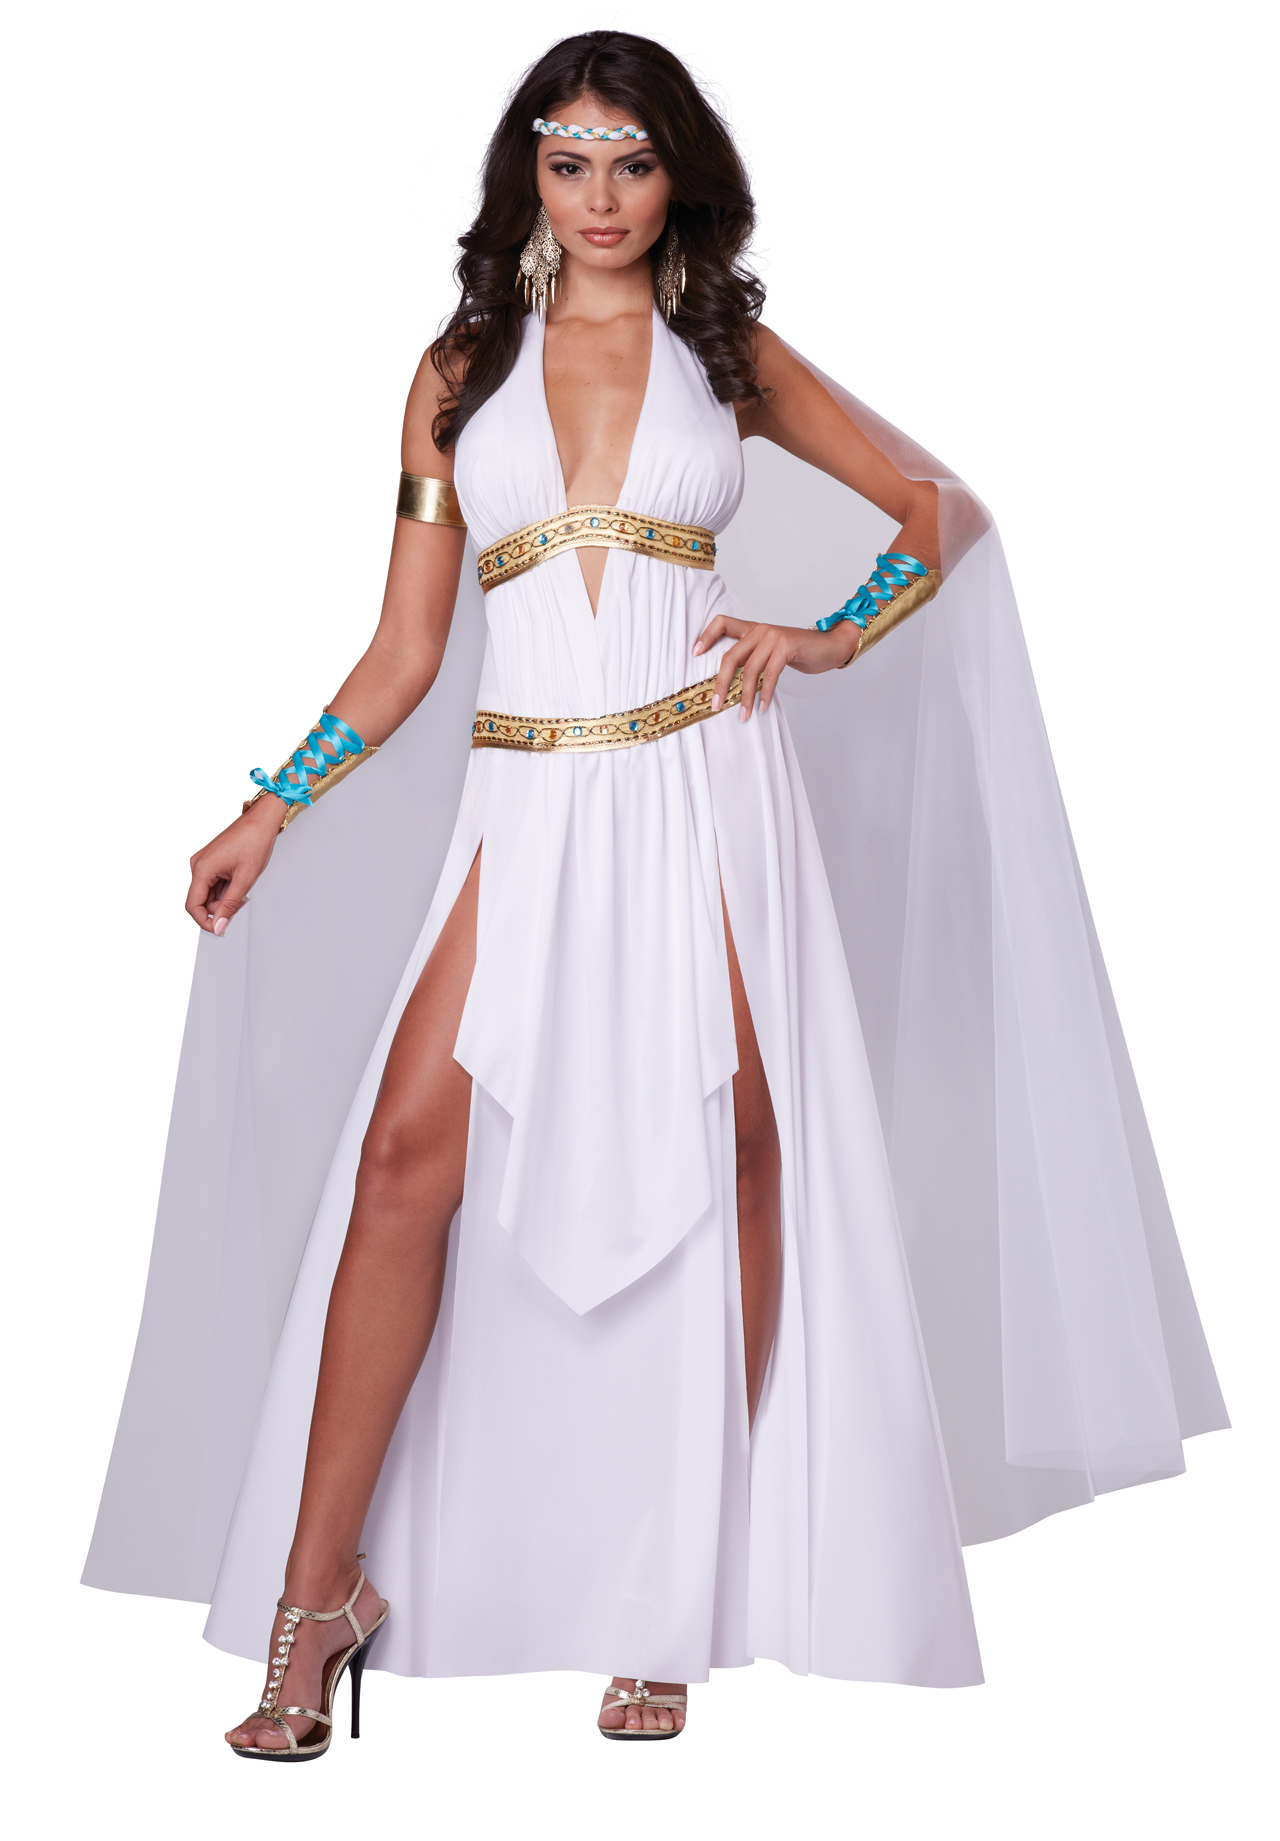 womens glorious roman empire greek goddess full halloween costume